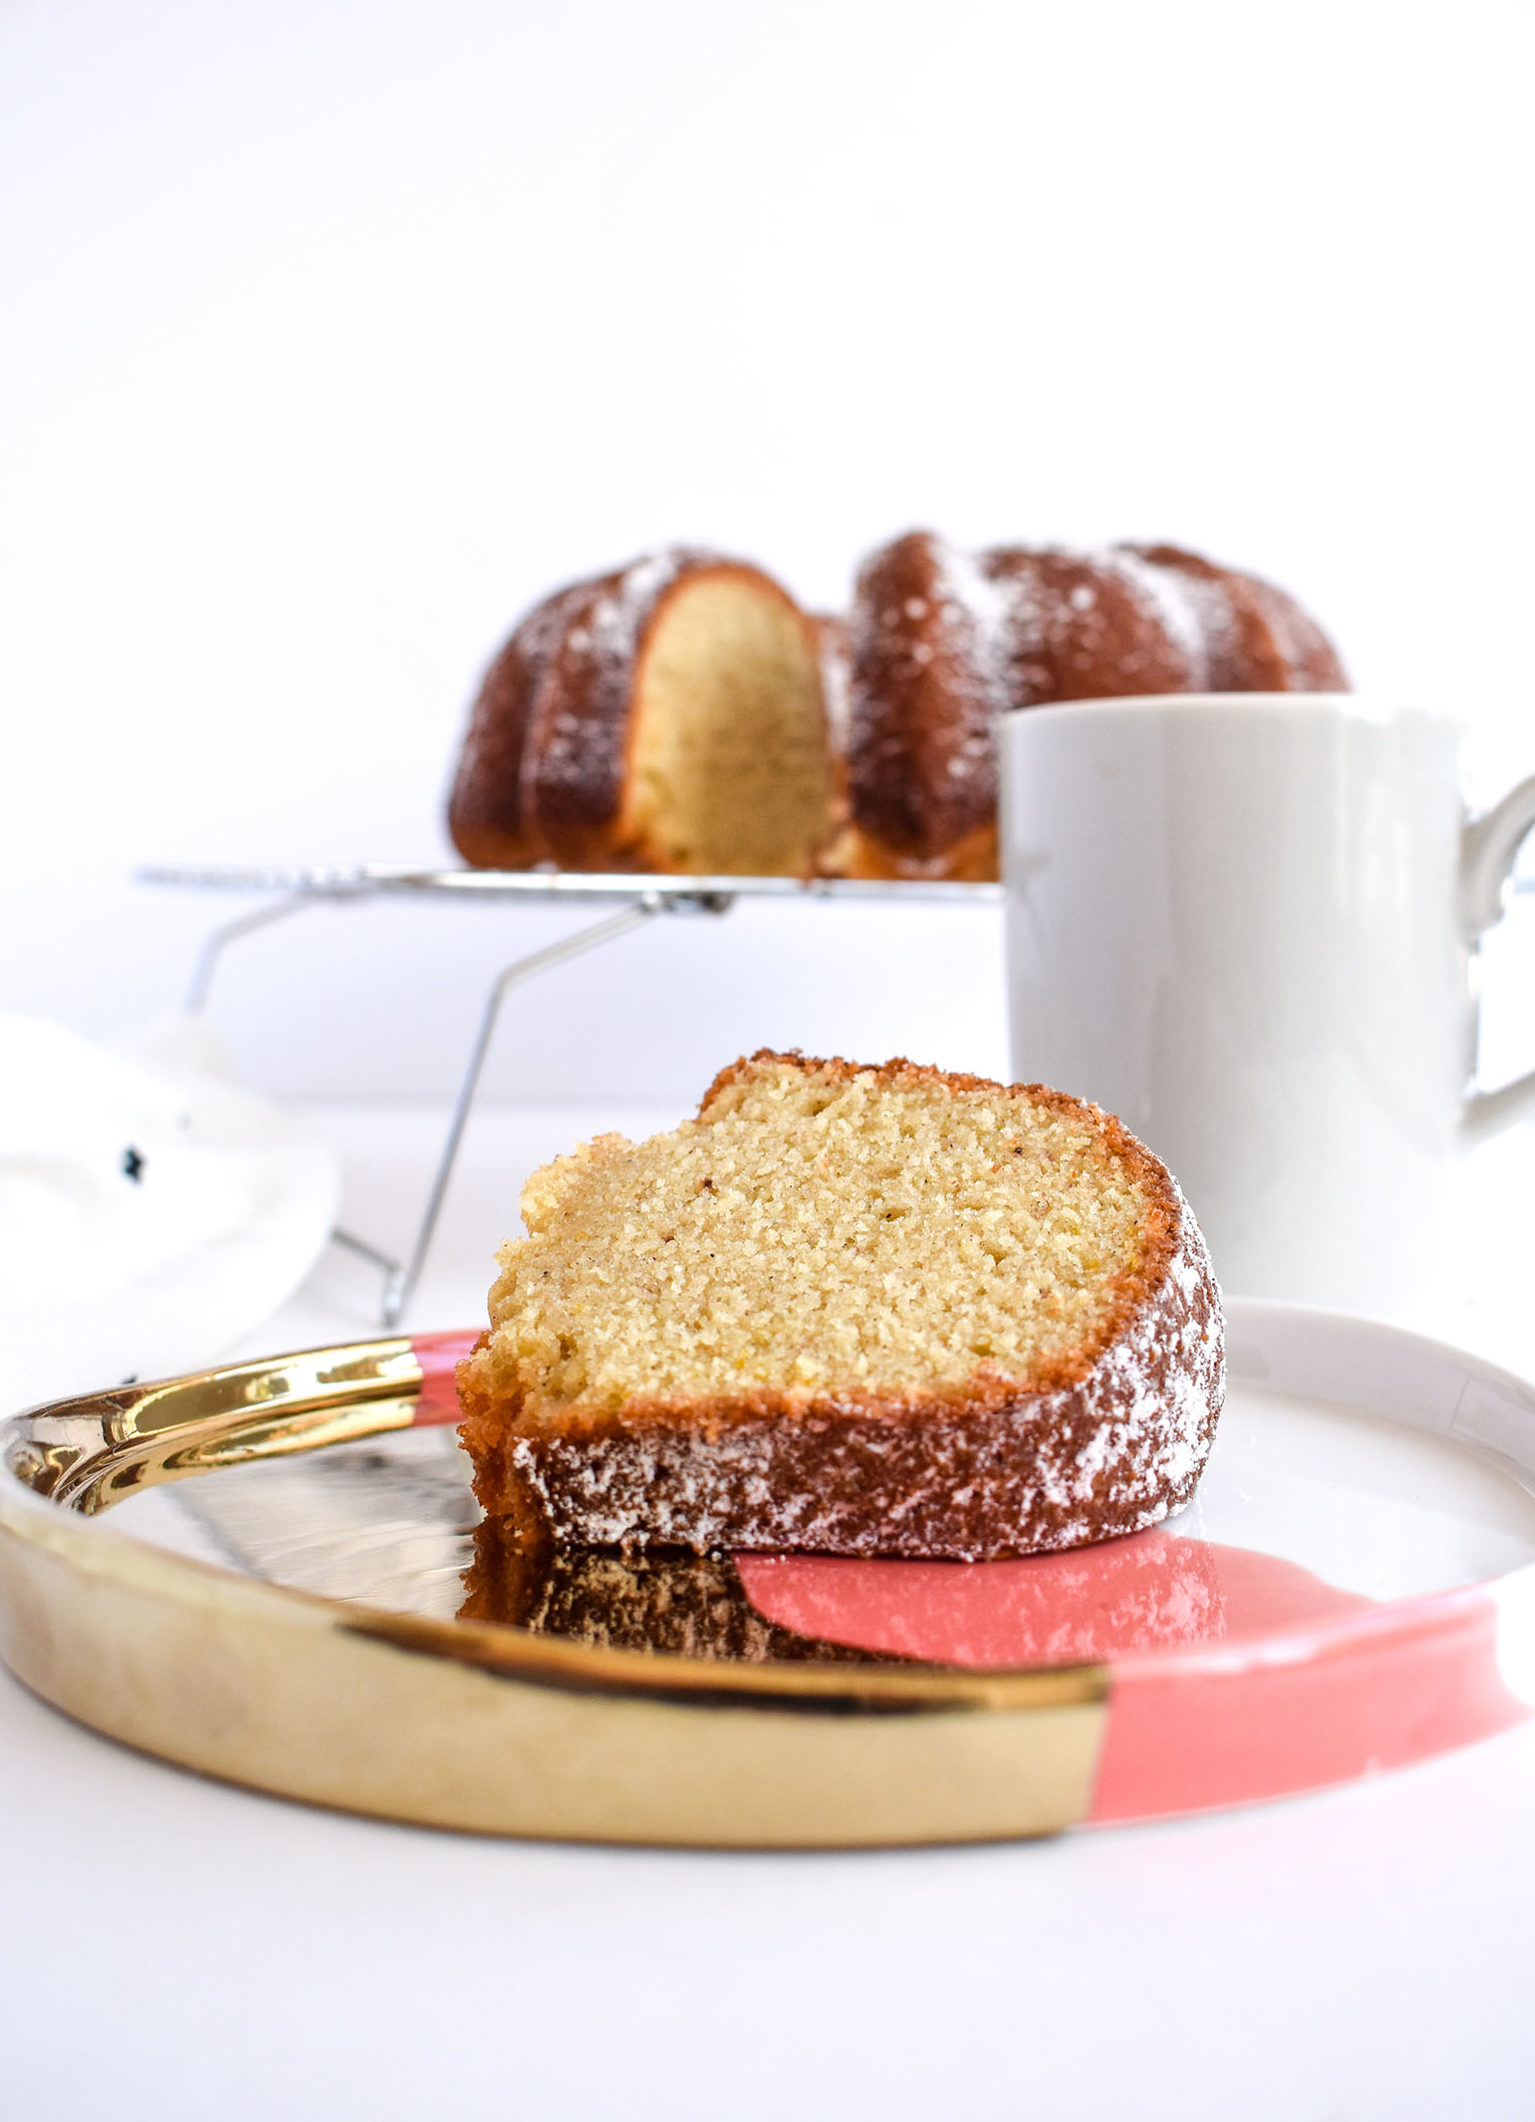 Spiced Chai Bundt Cake Slice on Plate